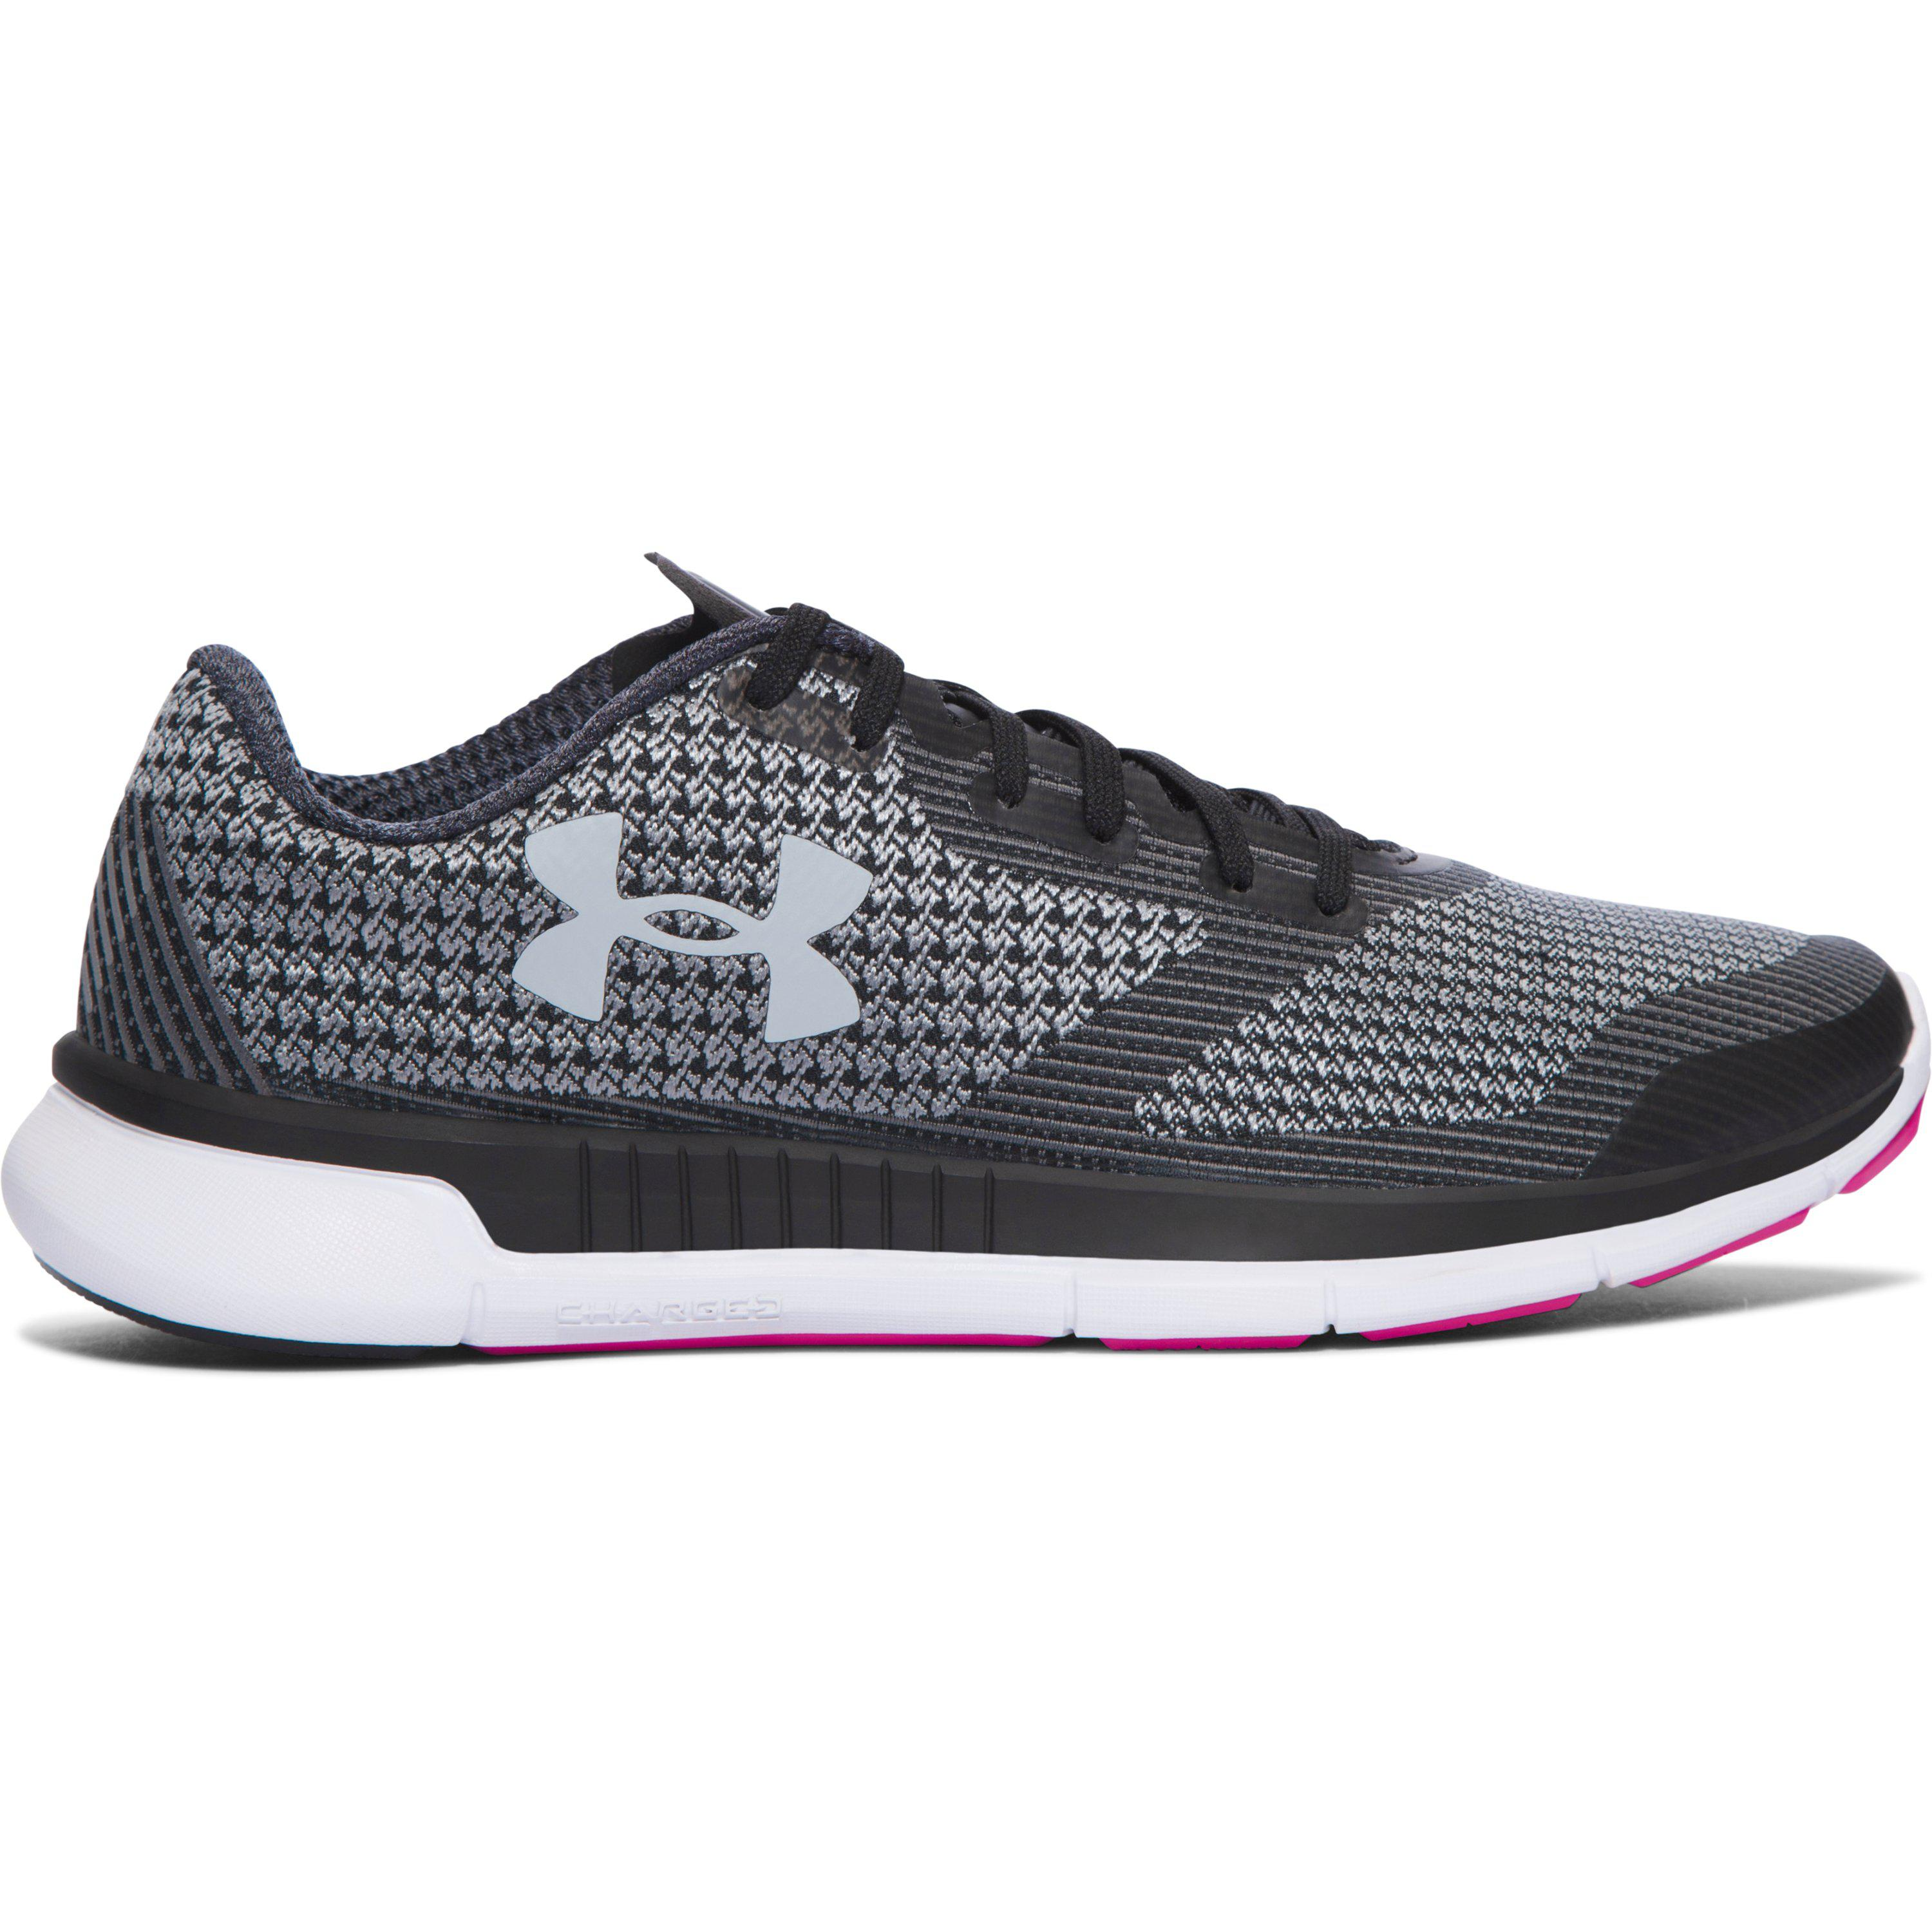 Under Armour Charged Coolswitch Run Black/White/White For Women Sale